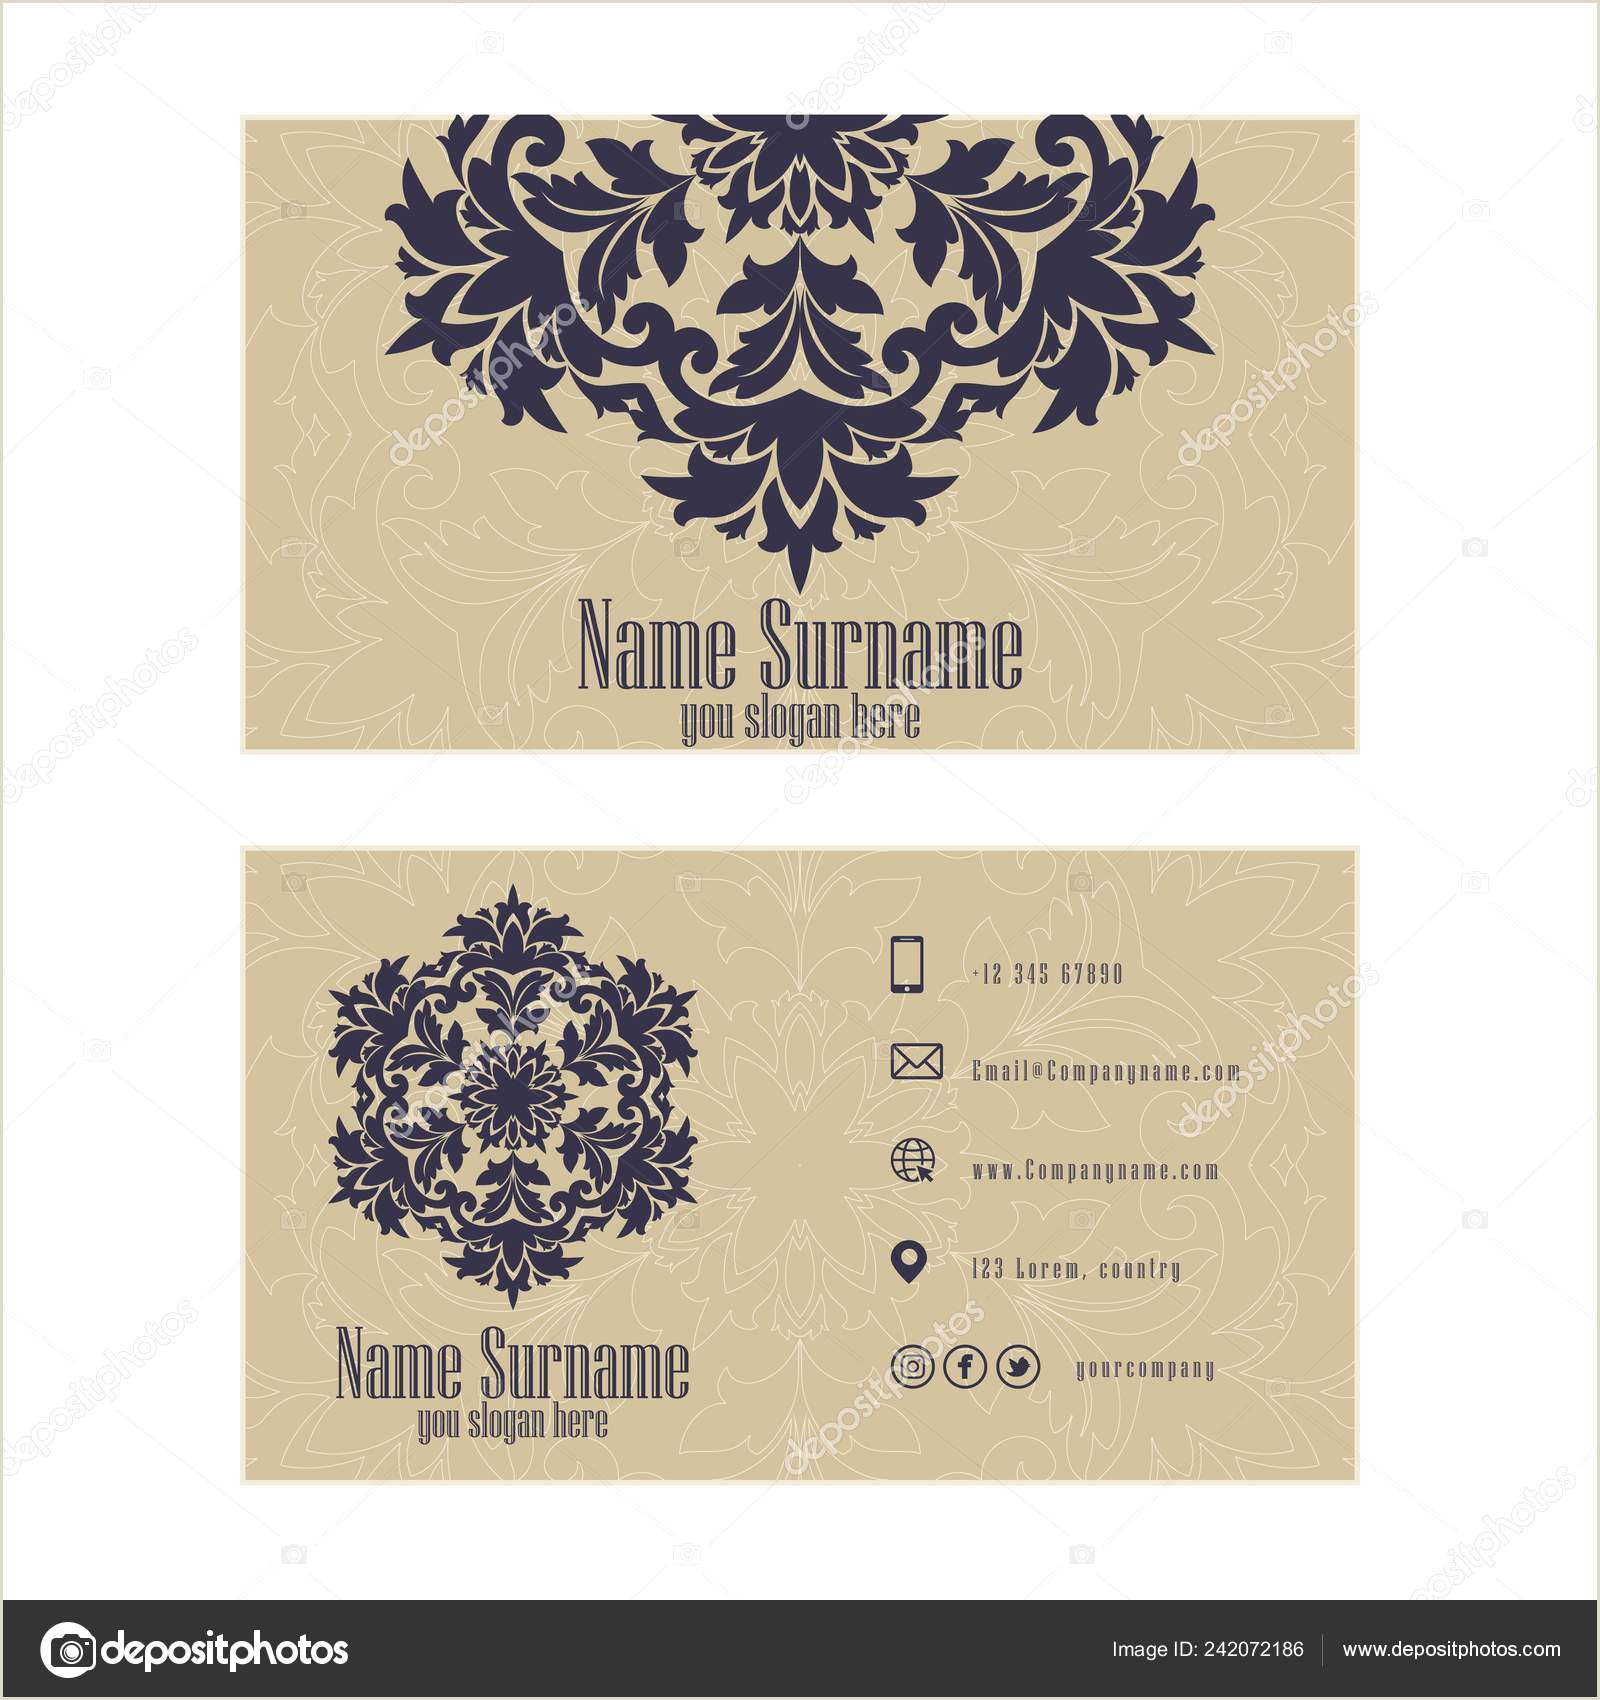 Unique Artist Business Cards Corporate Business Or Visiting Card Professional Designer Vector Abstract Creative Business Cards